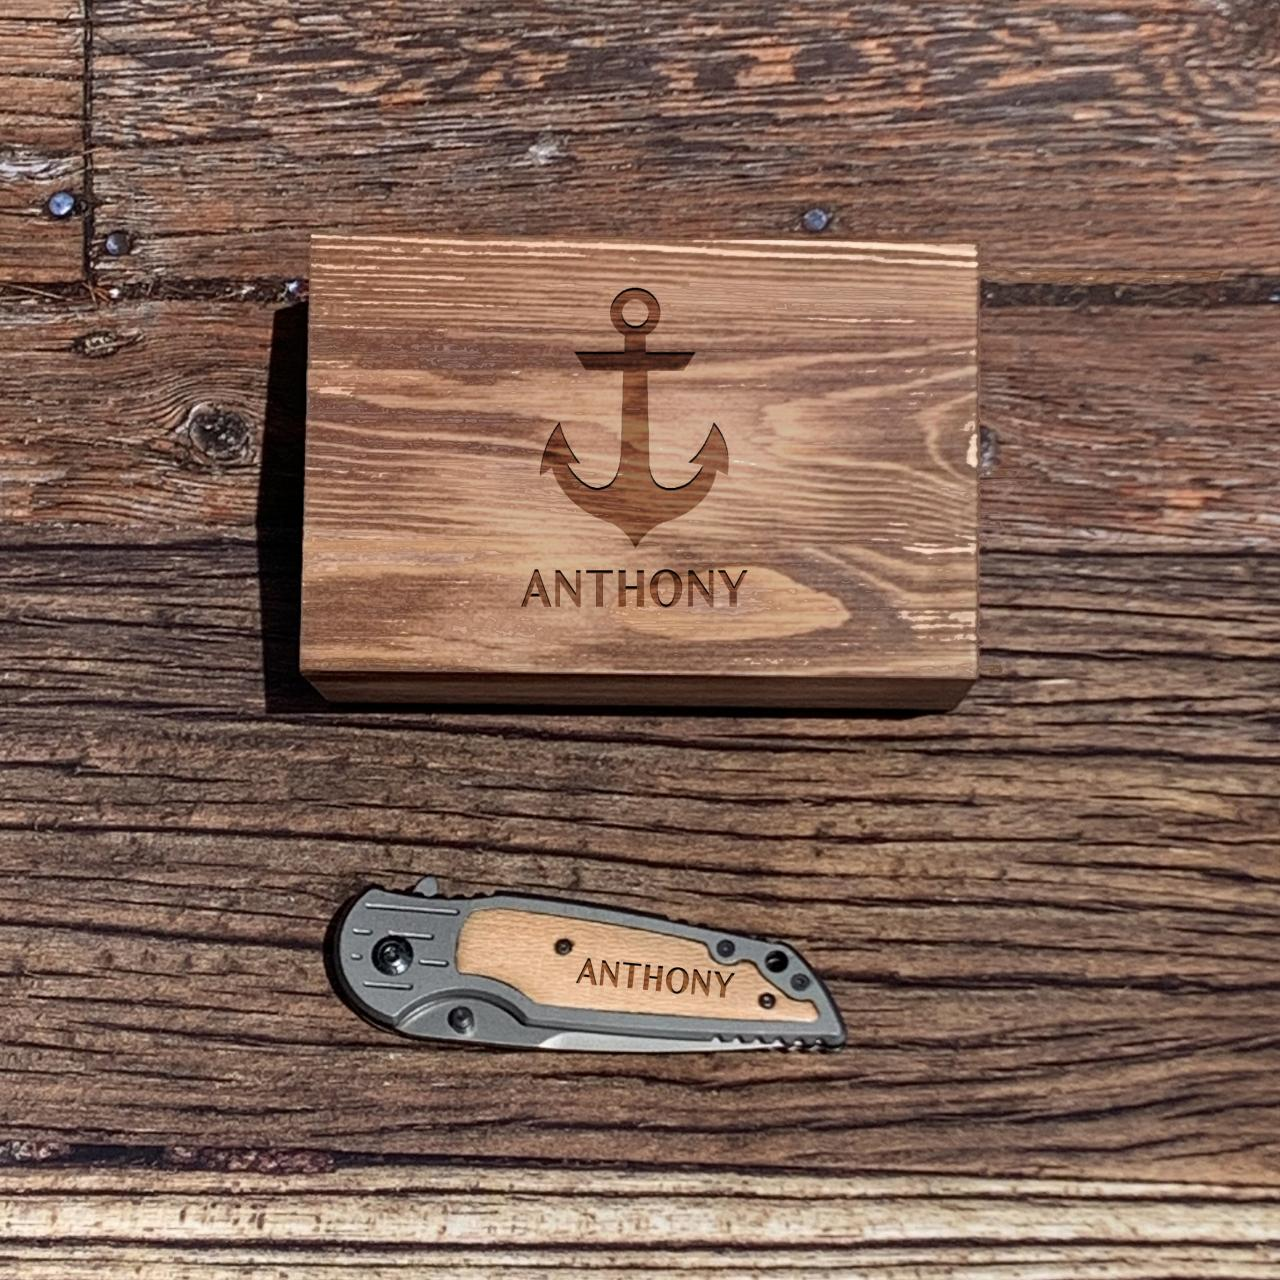 Personalize Knife with wood box, Engraved Knife, Groomsman Knife, Groomsman Gift, Wedding Favor, Hunting Knifes,Gift for Father,Gift for him